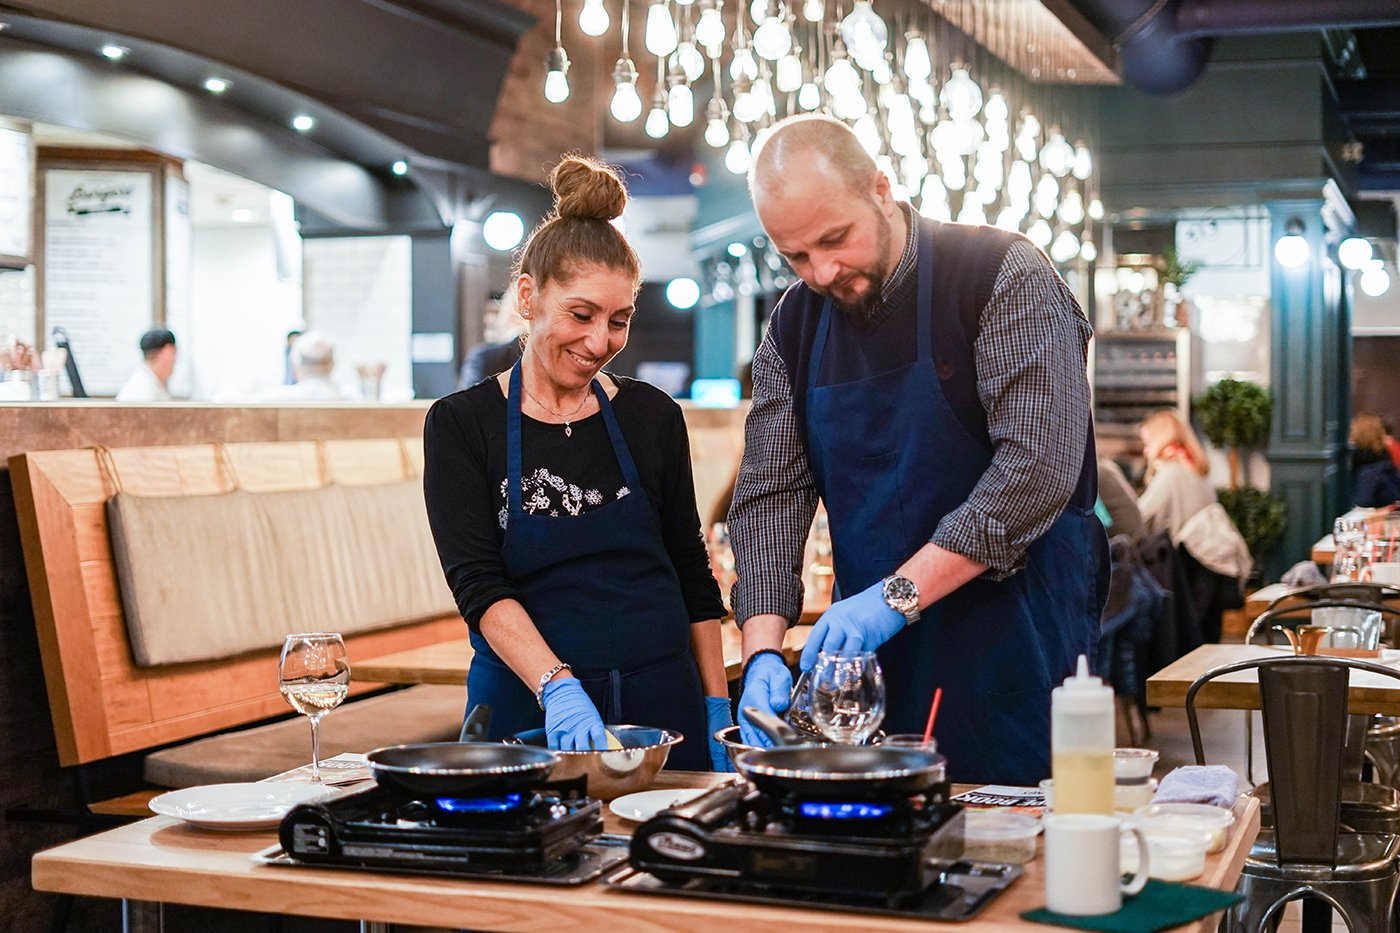 Join us for a Cooking Class at Cravings Market Restaurant